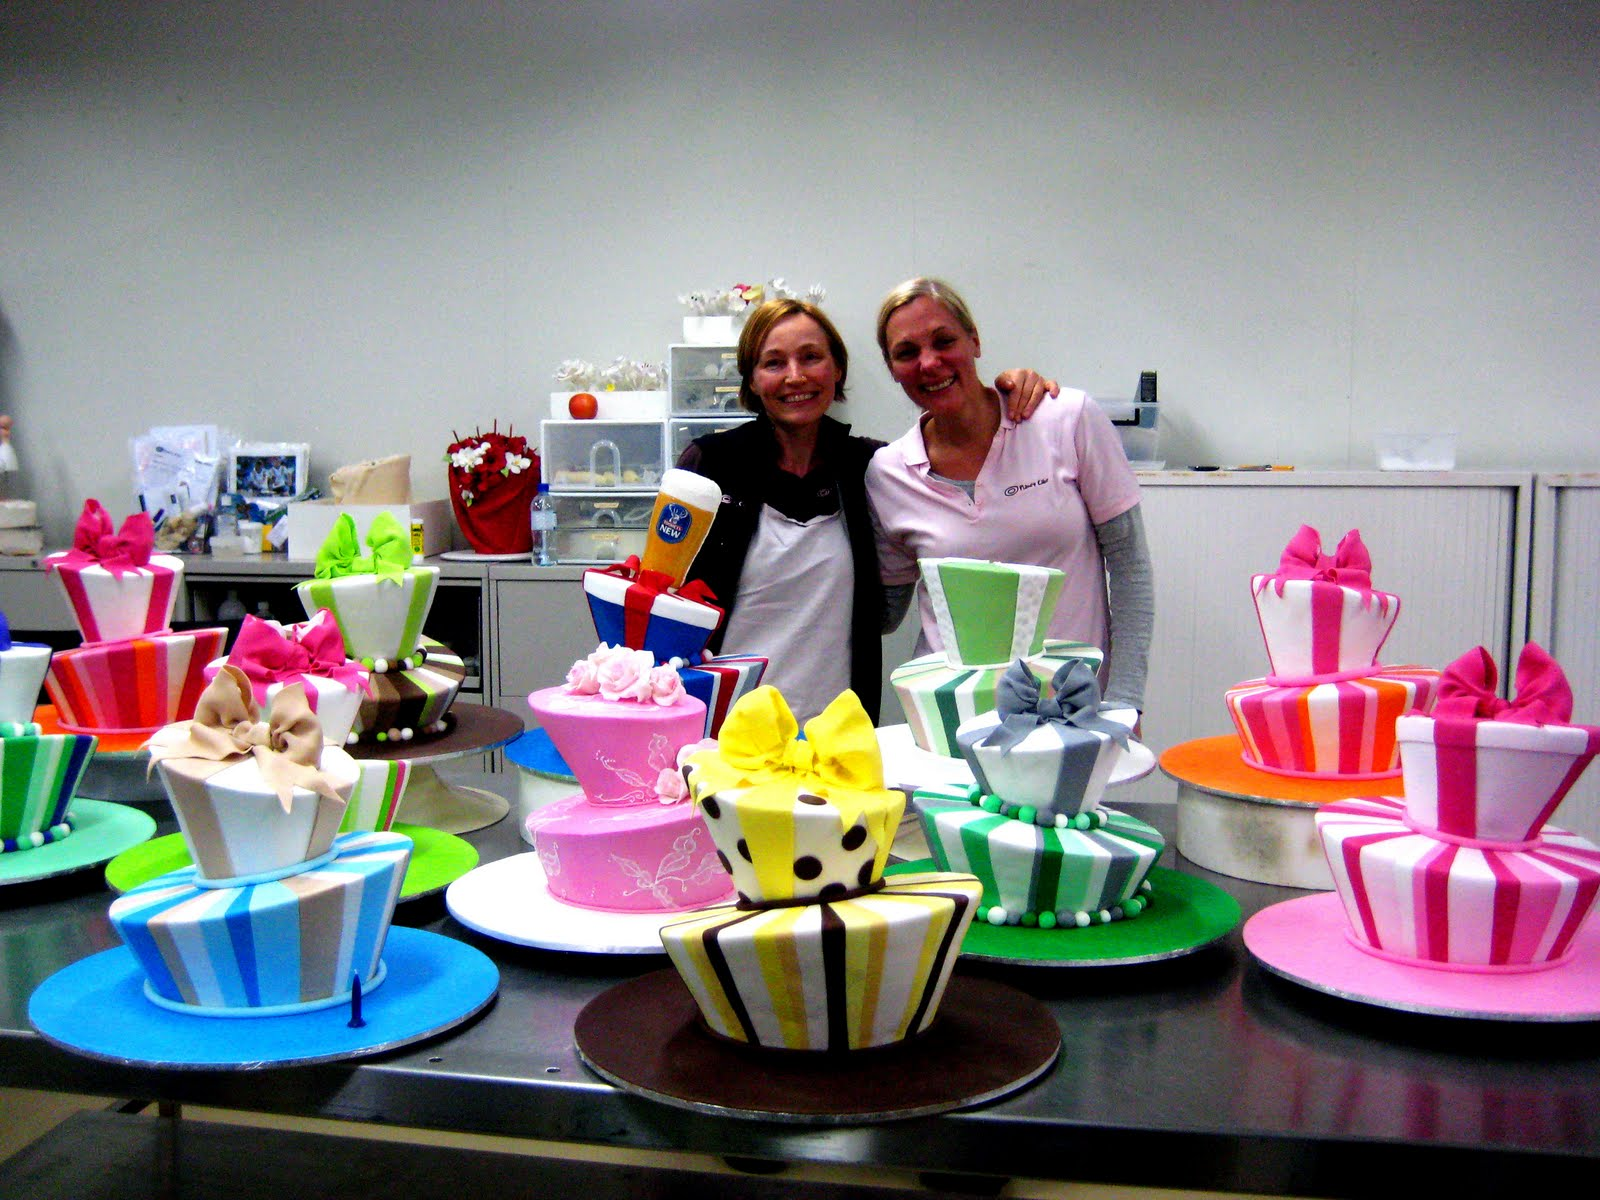 Cake Decorating Classes Central West Nsw : PLANET CAKE UPDATE: Meanwhile back in Sydney...